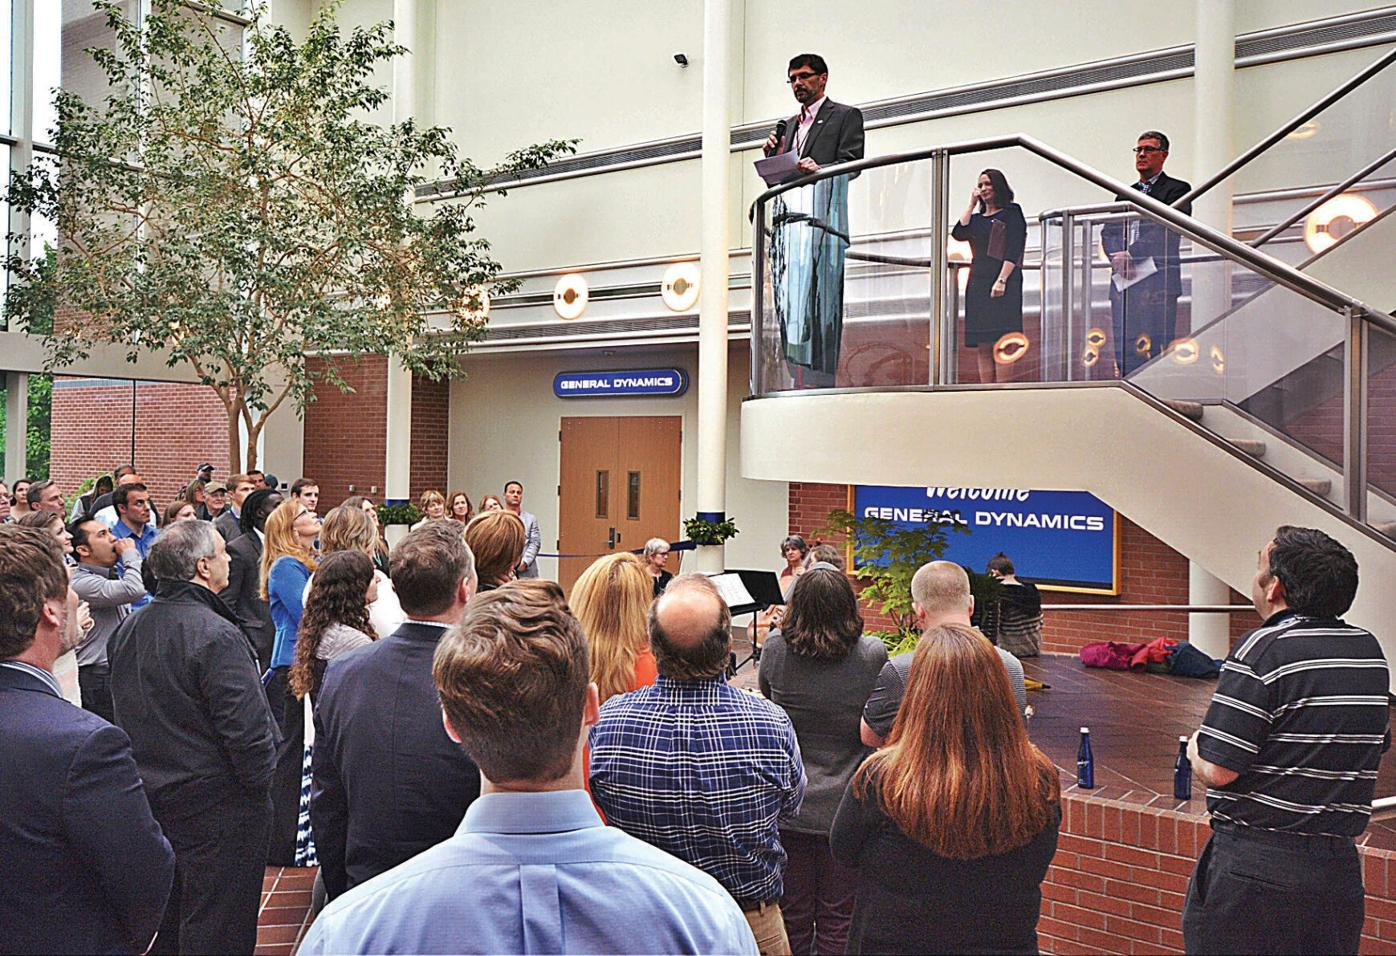 General Dynamics celebrates expanded footprint in Pittsfield